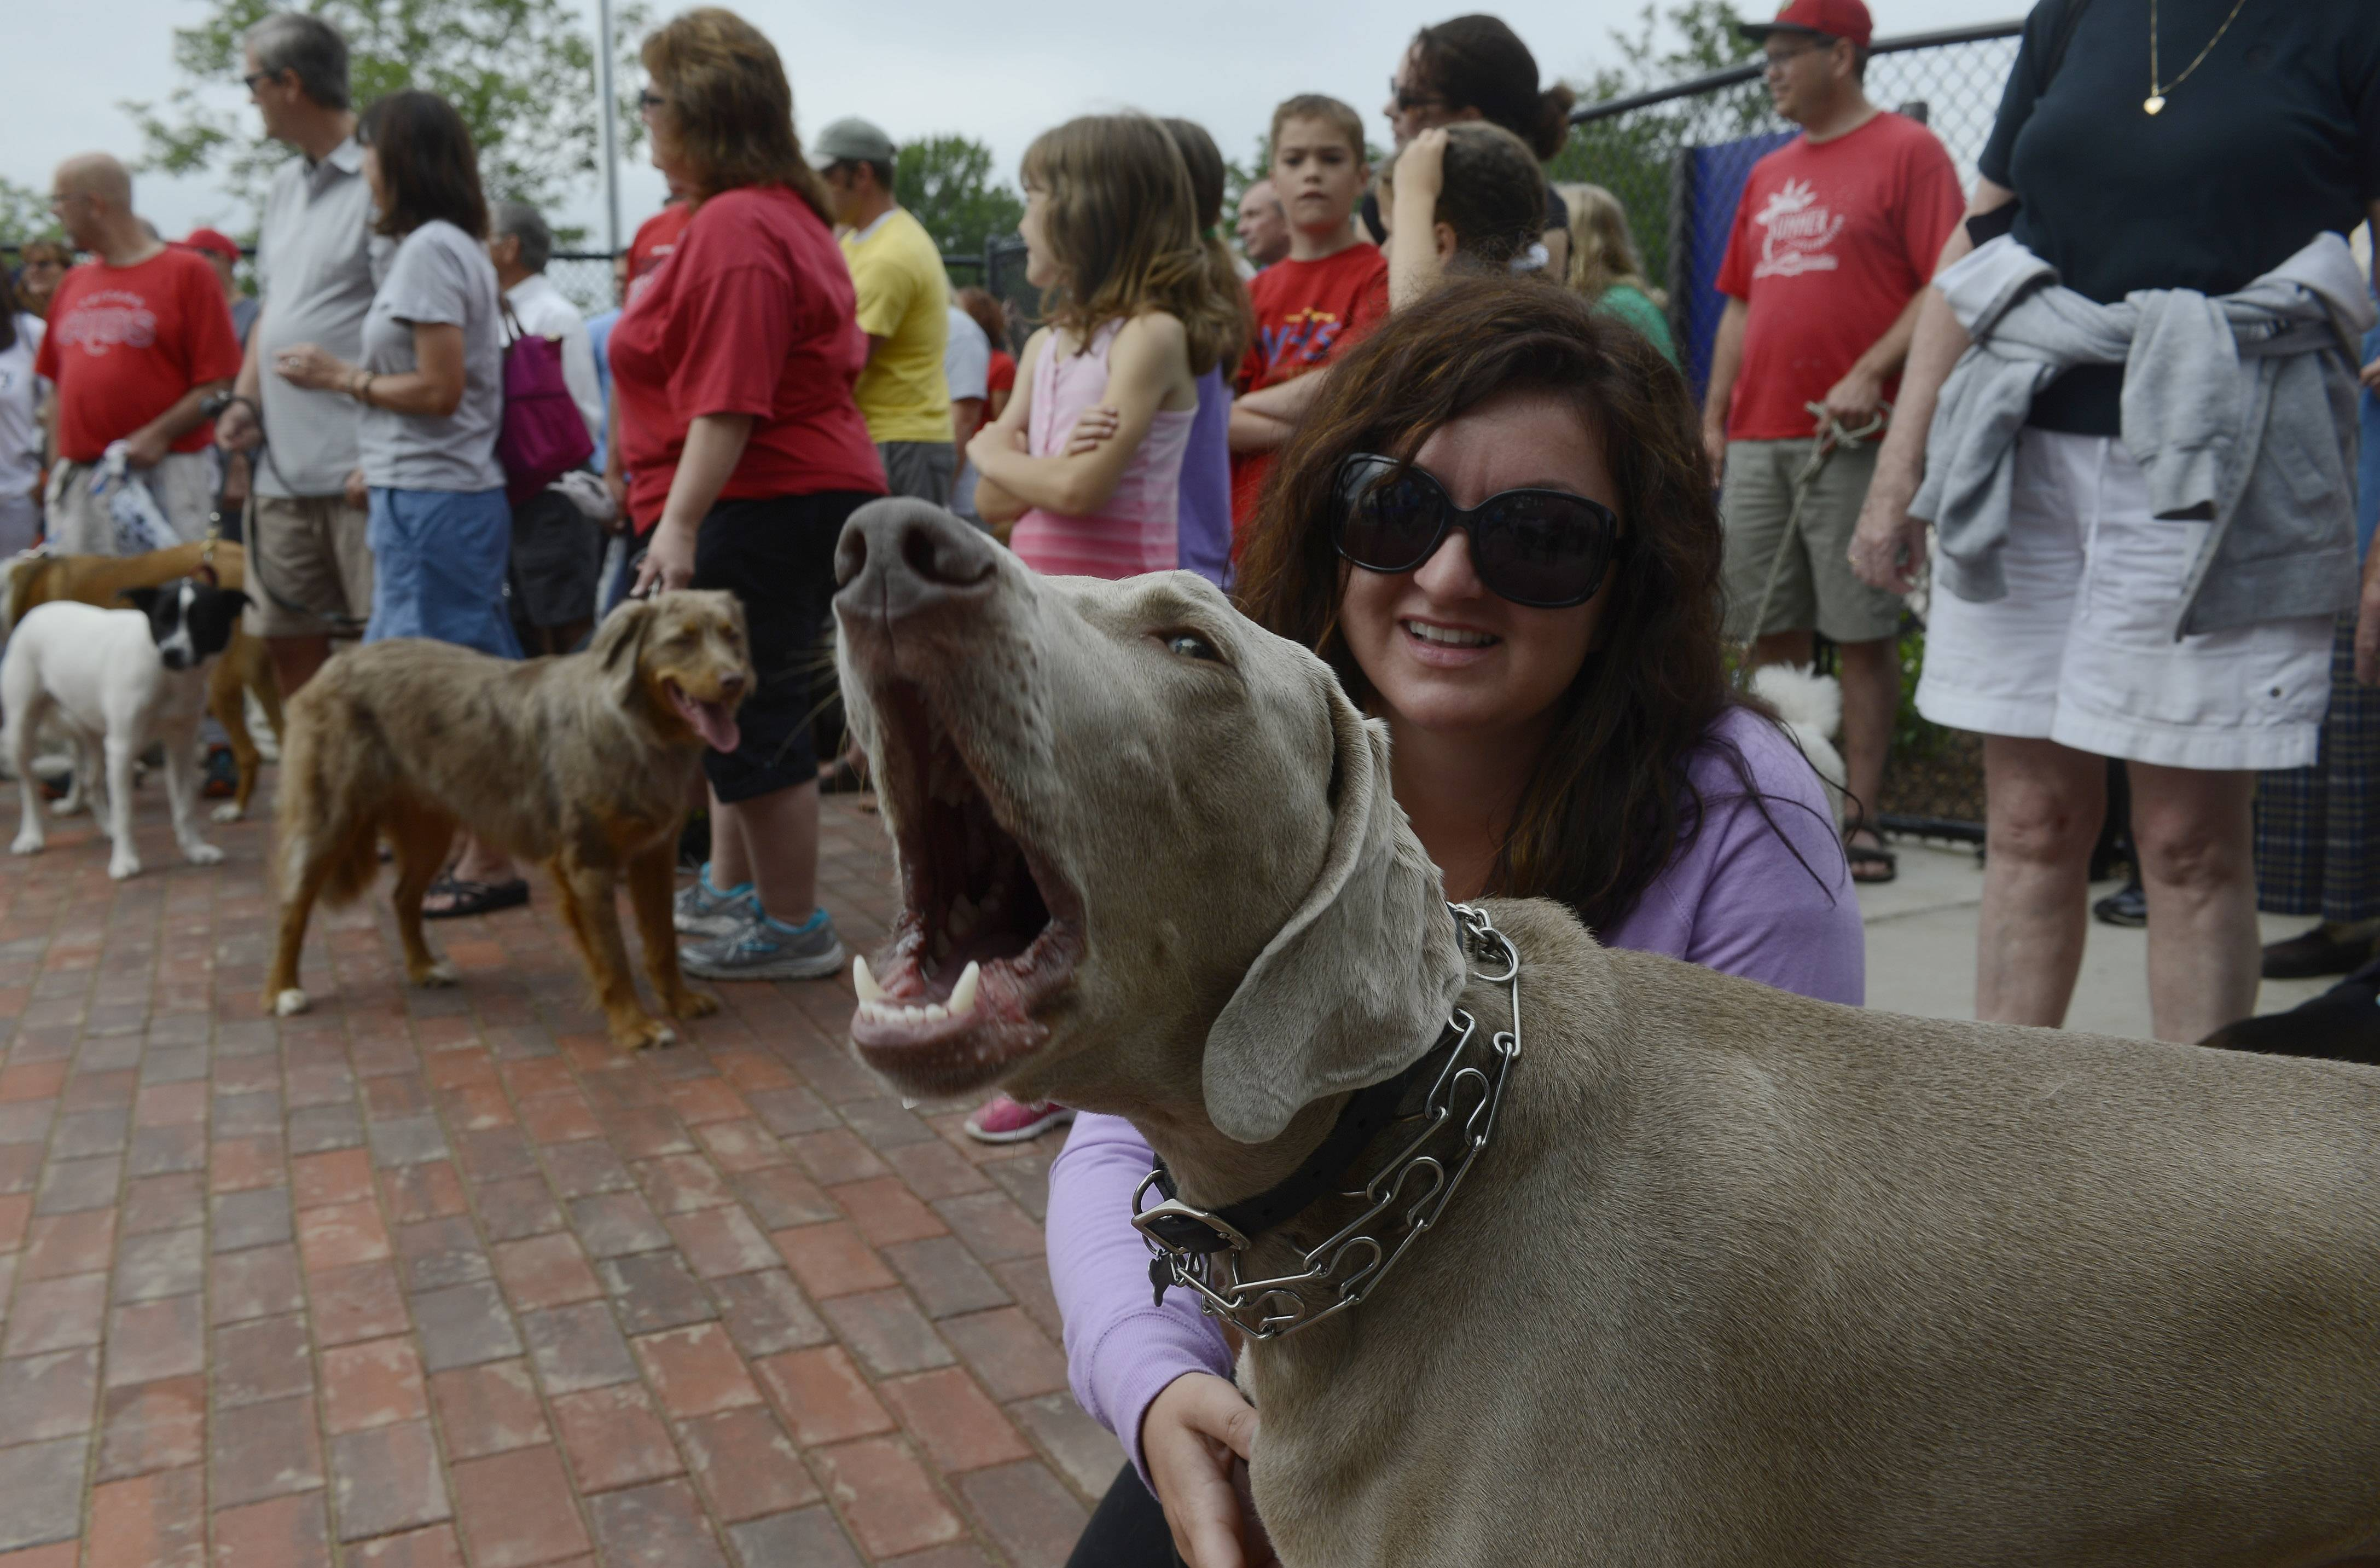 Turbo, a Weimaraner owned by Sabina Mazurczyk of Arlington Heights, lends his voice to the grand opening ceremony of Canine Commons dog park at Melas Park in Mount Prospect.